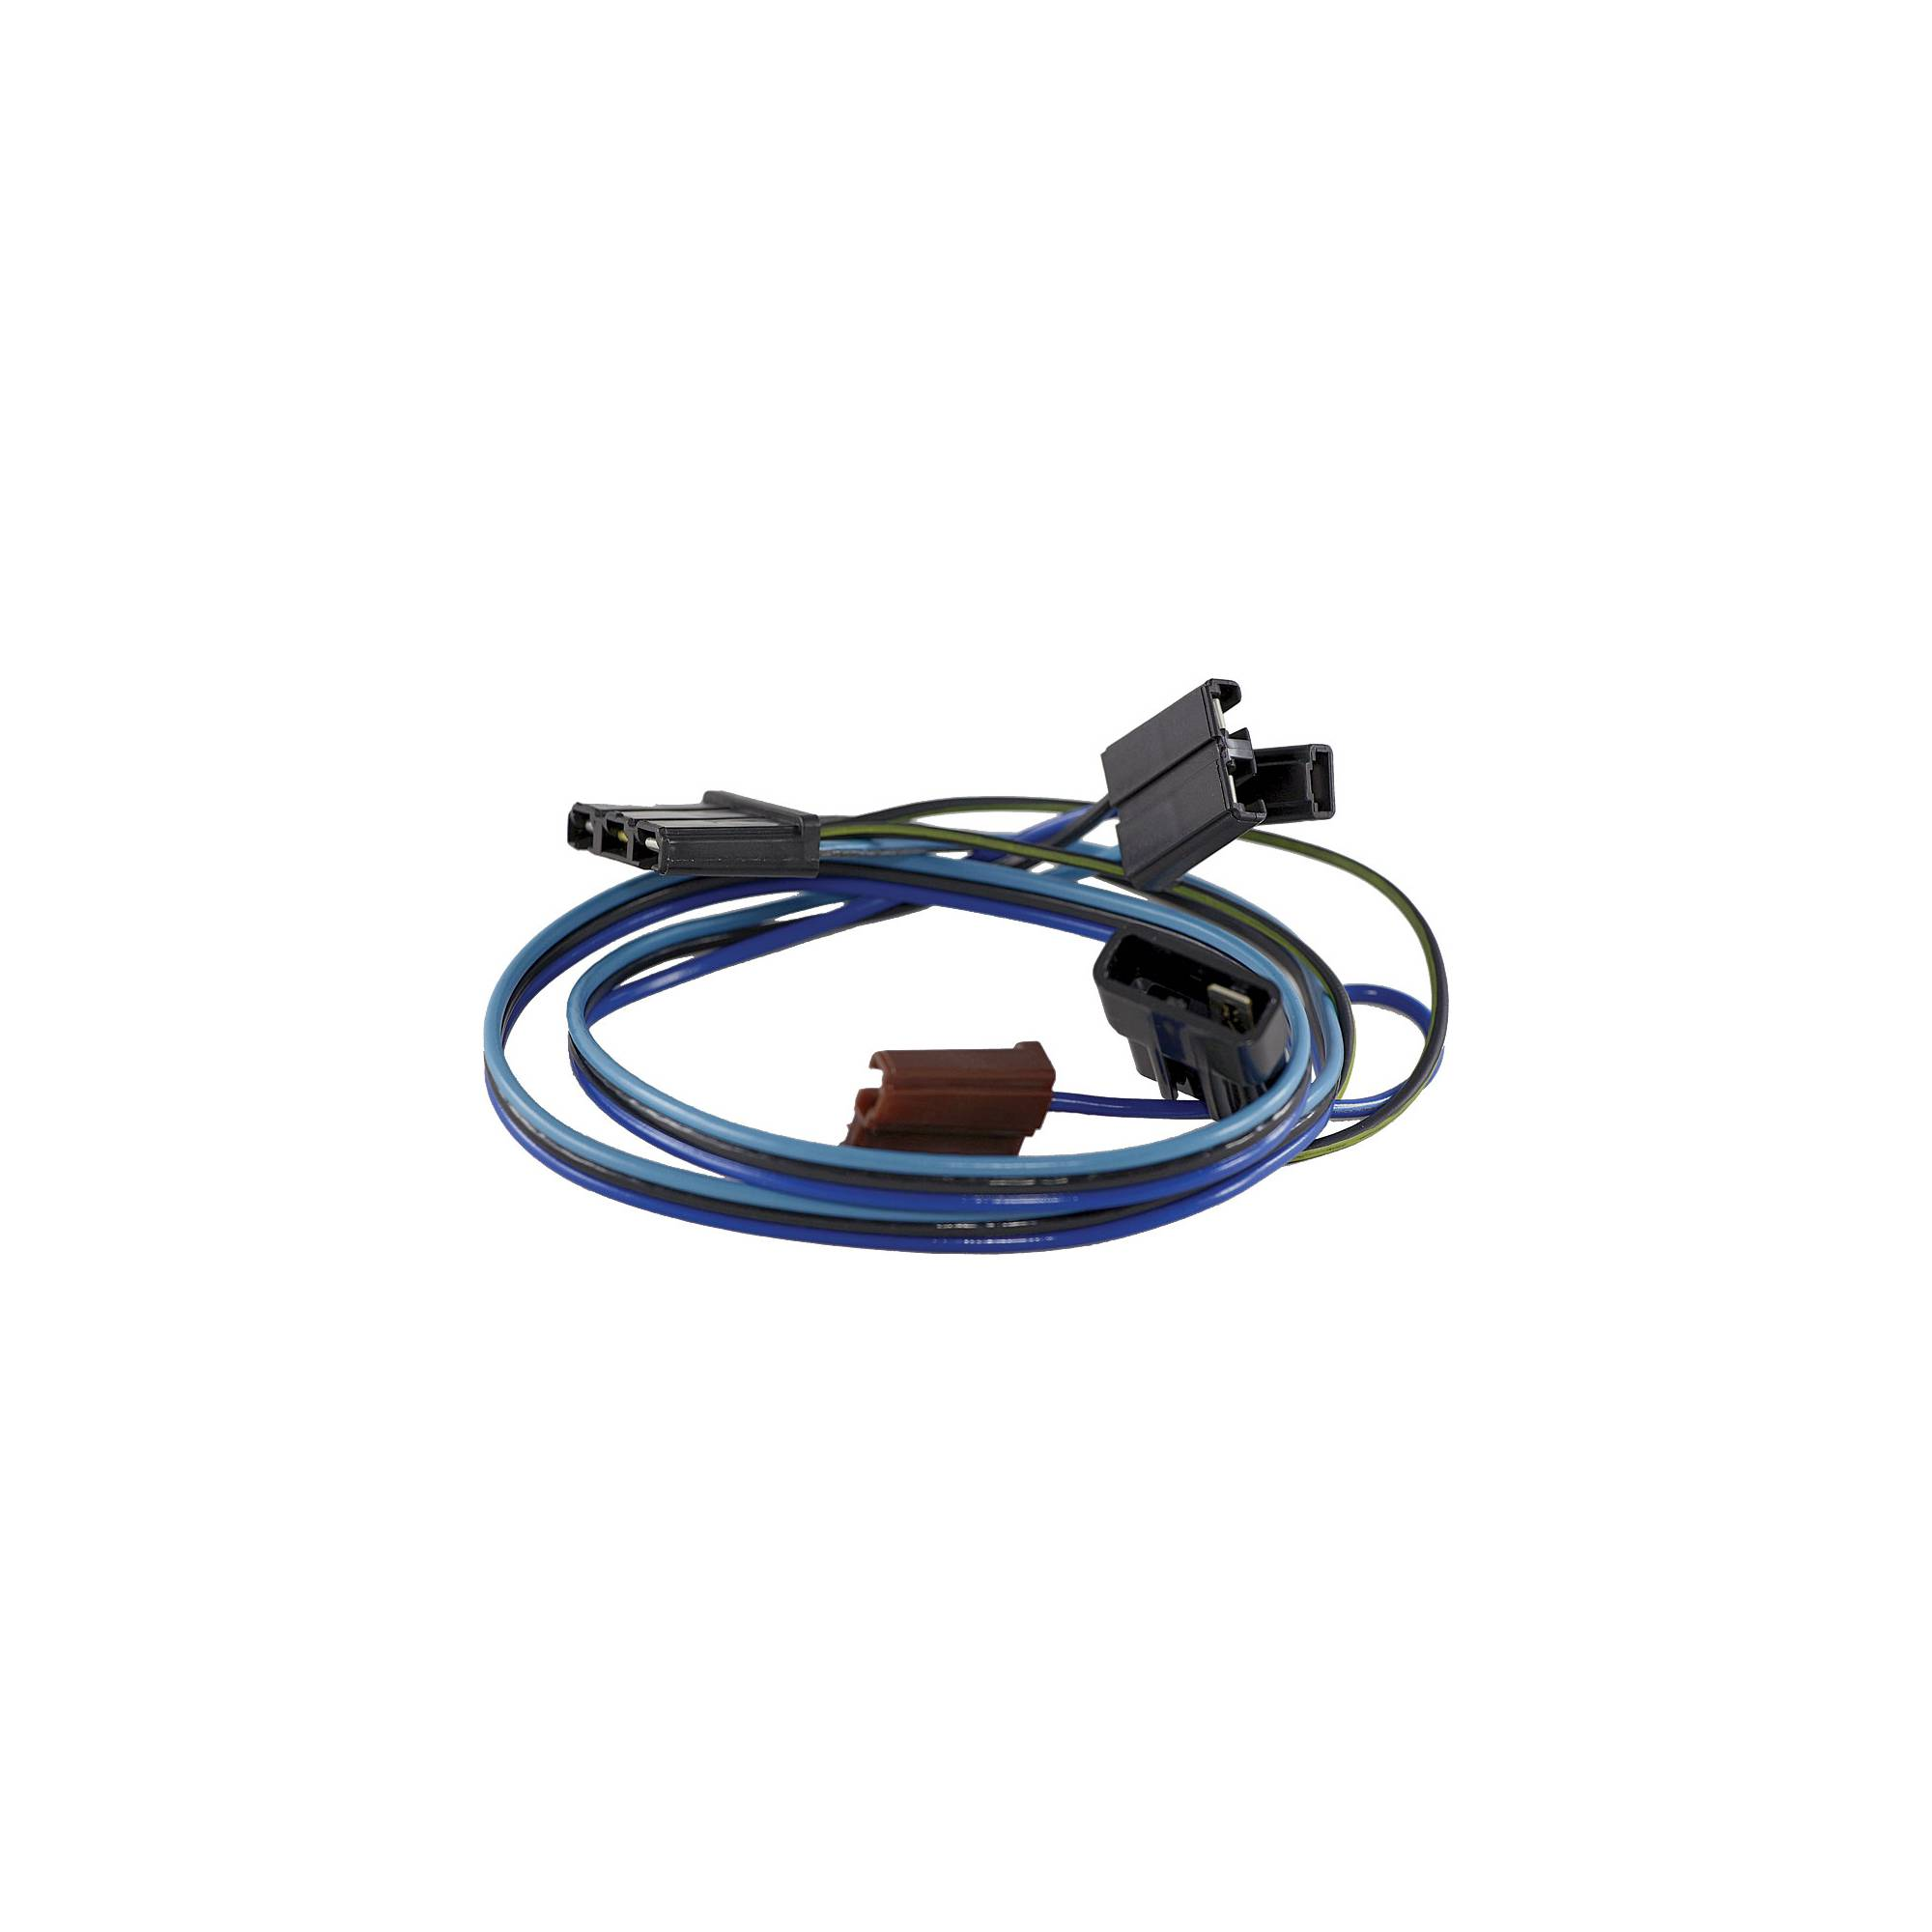 hight resolution of eckler s premier products 50 206323 chevelle windshield wiper motor wiring harness 2 speed with washer walmart com